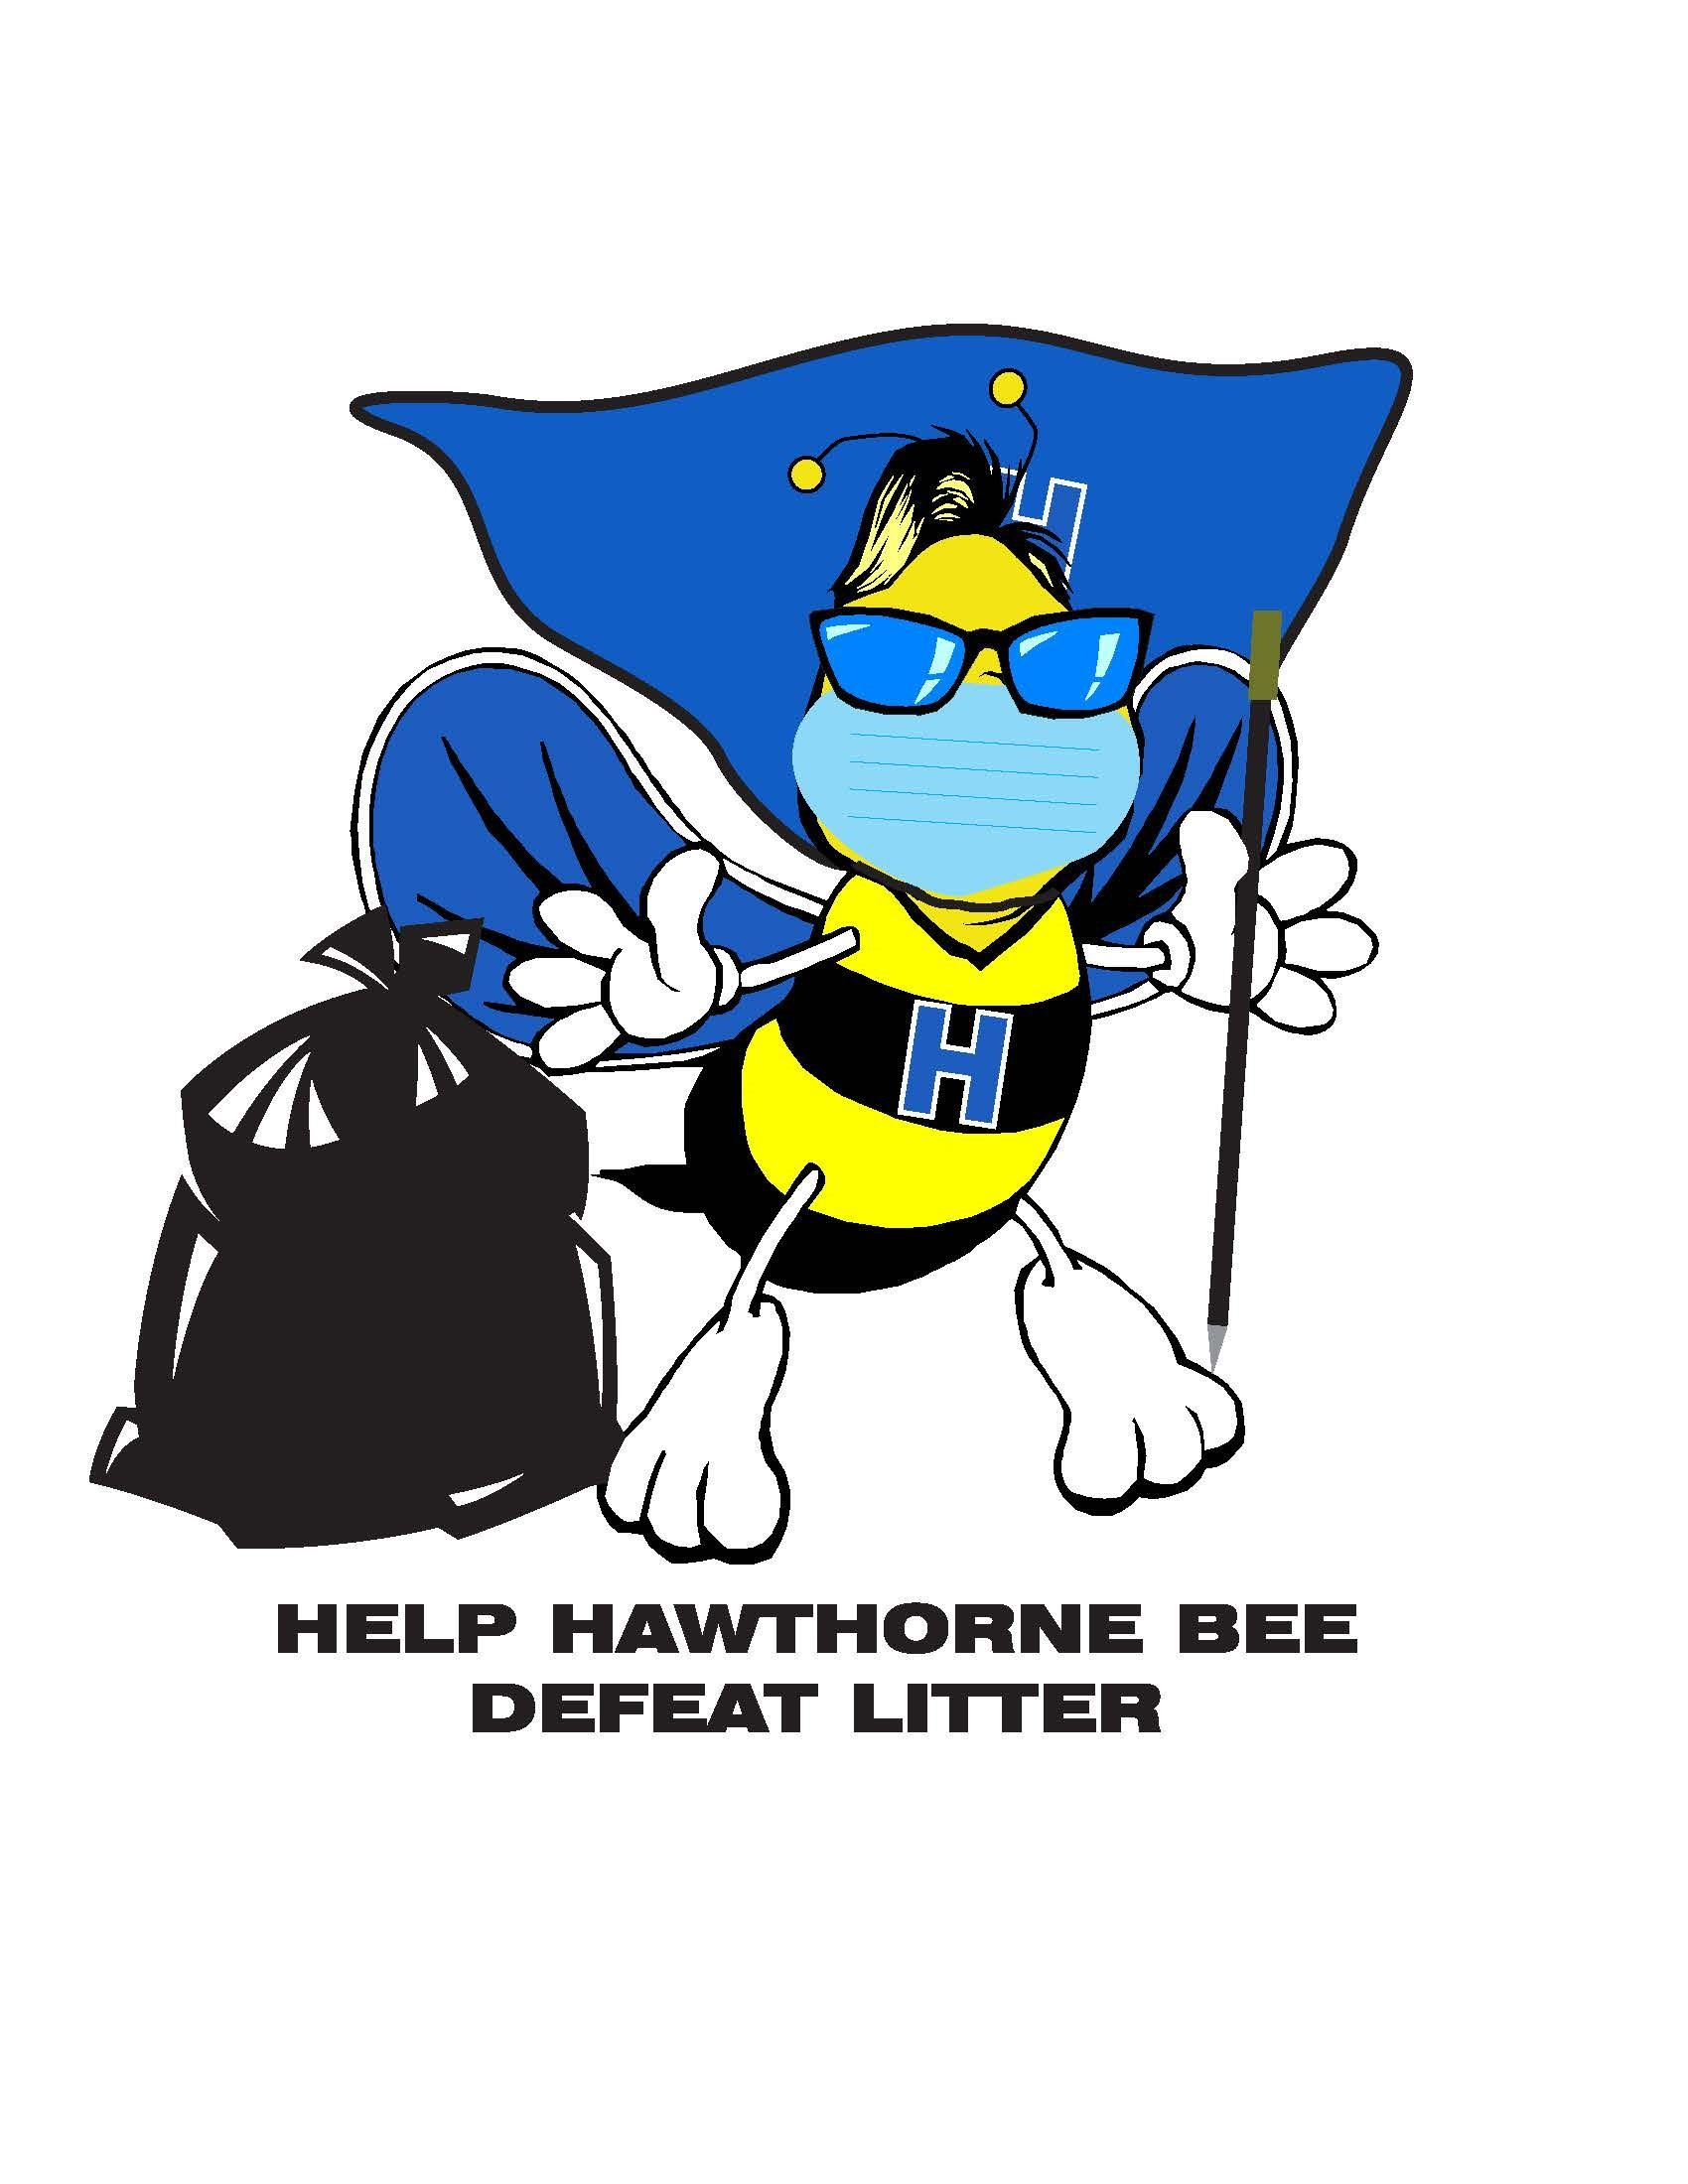 Hawthorne Litter Bee